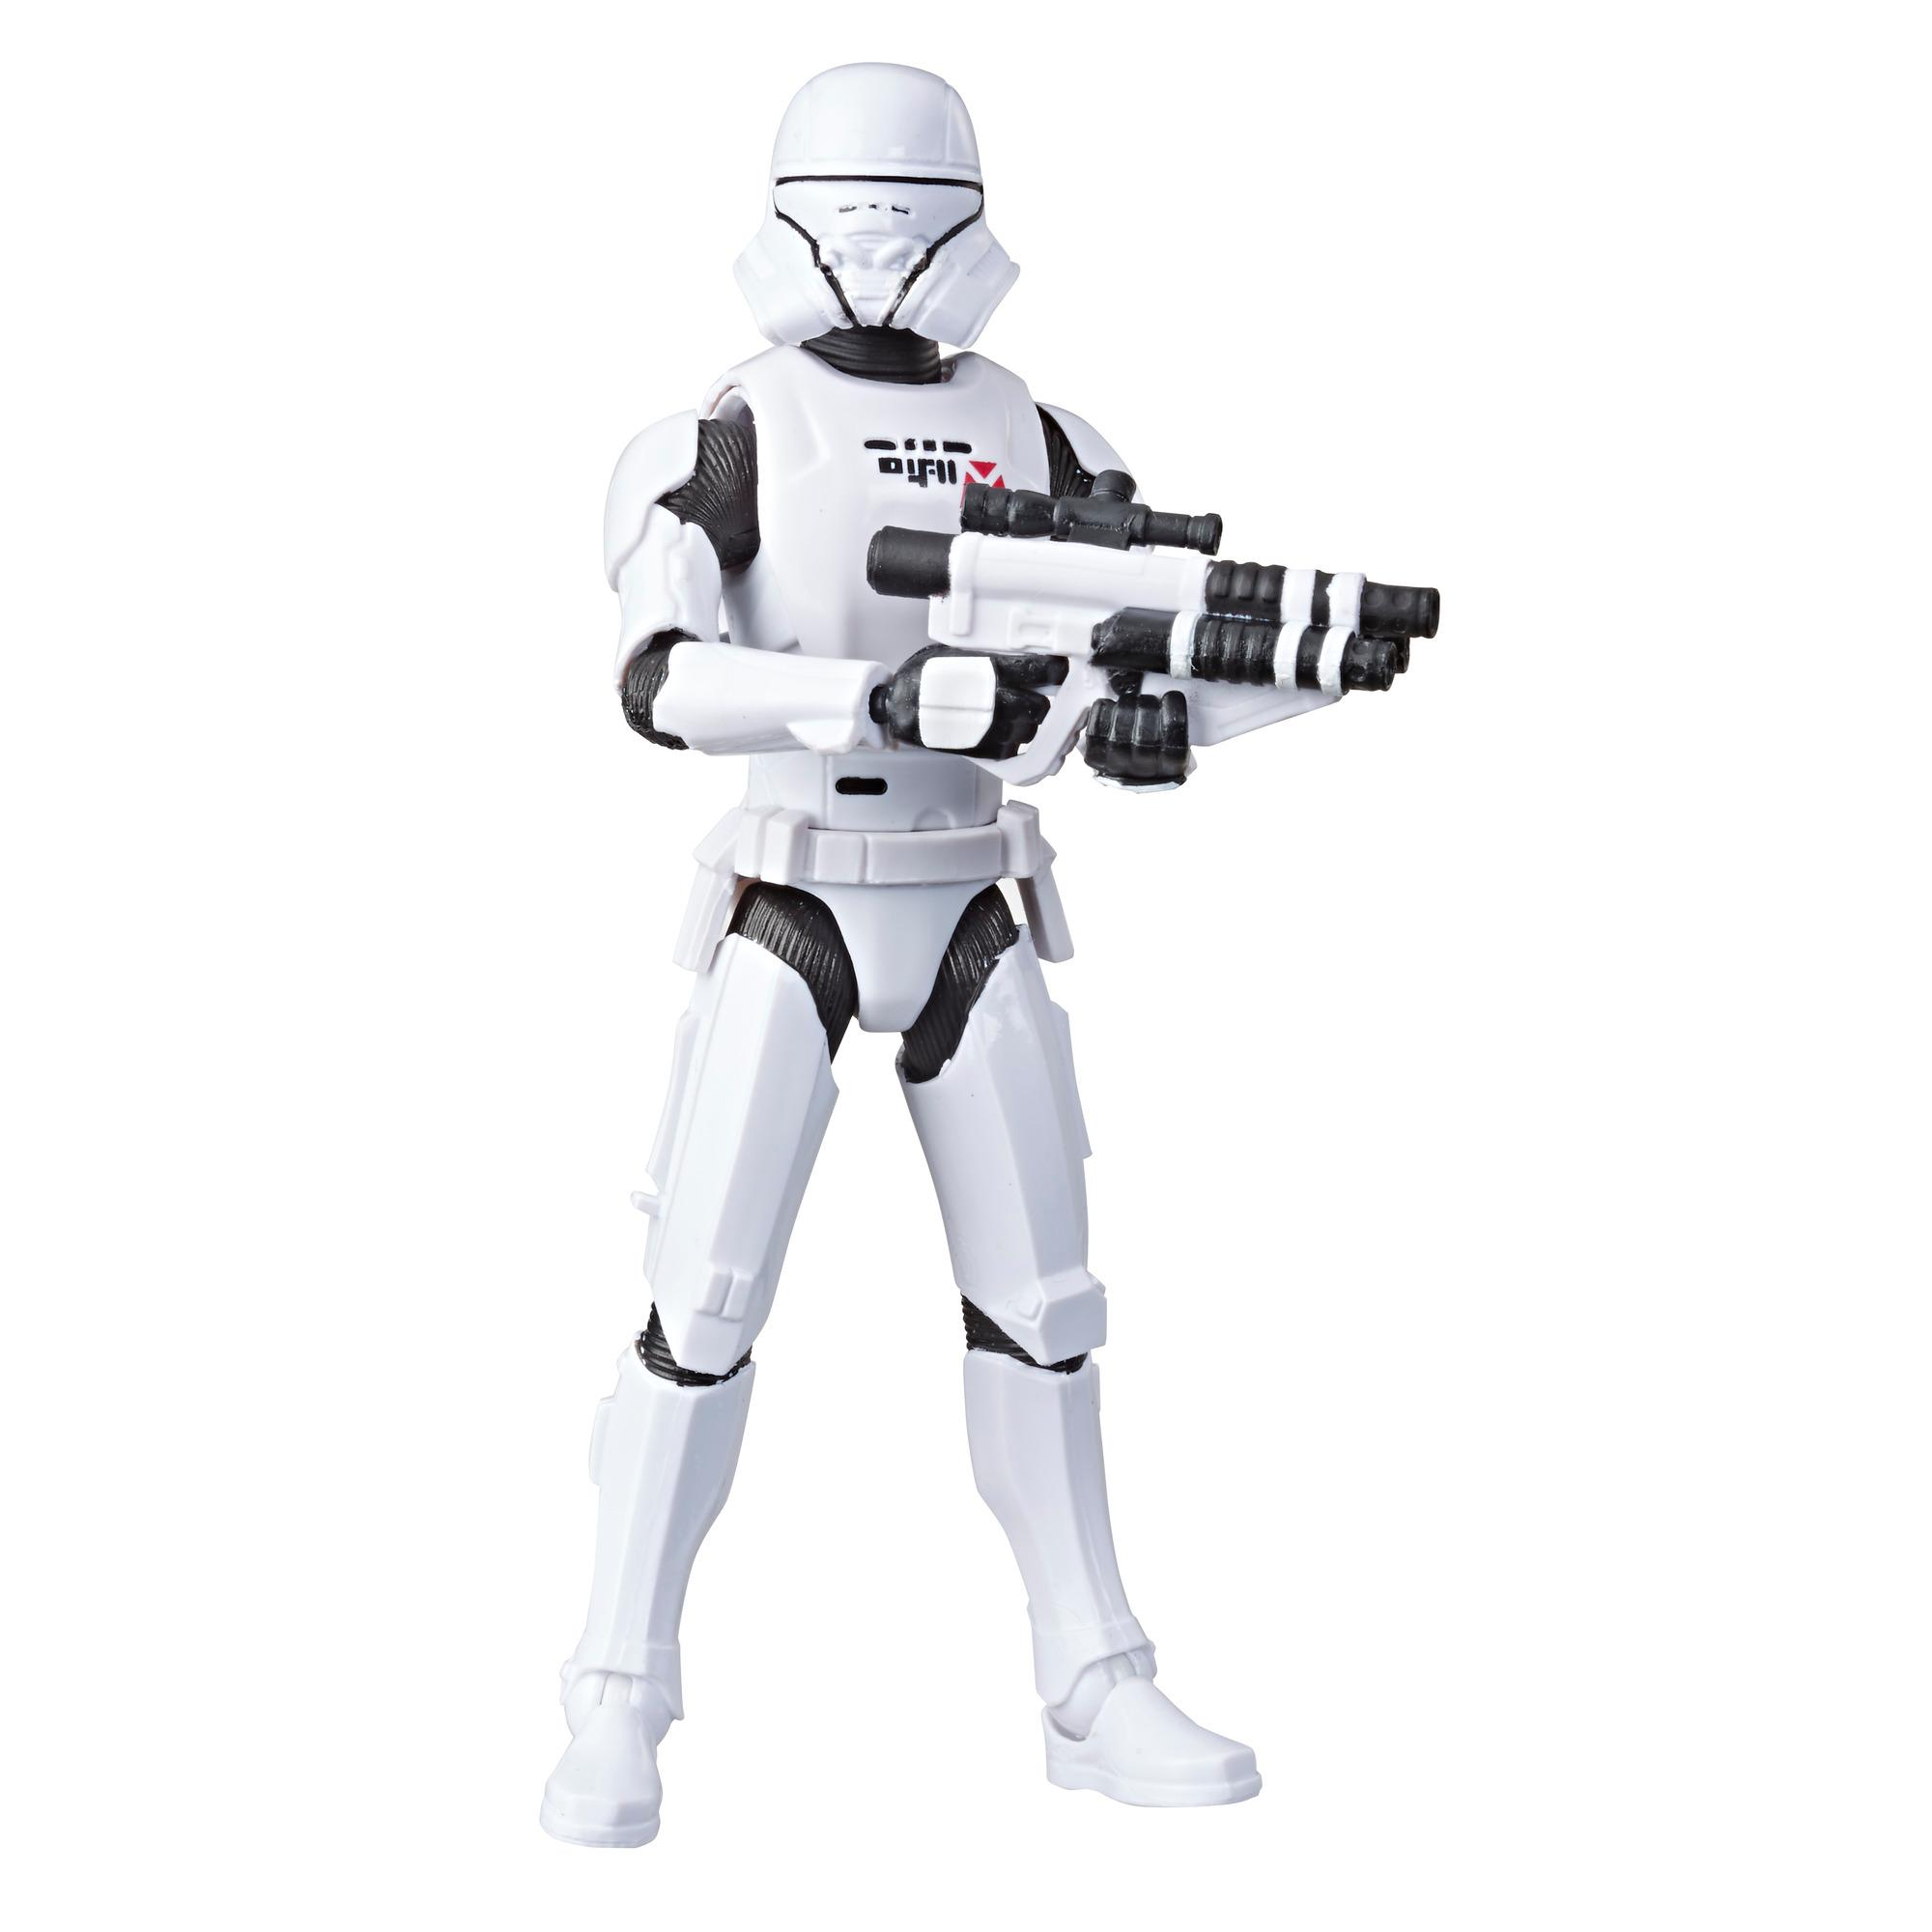 Star Wars Galaxy of Adventures Jet Trooper Özel Figür